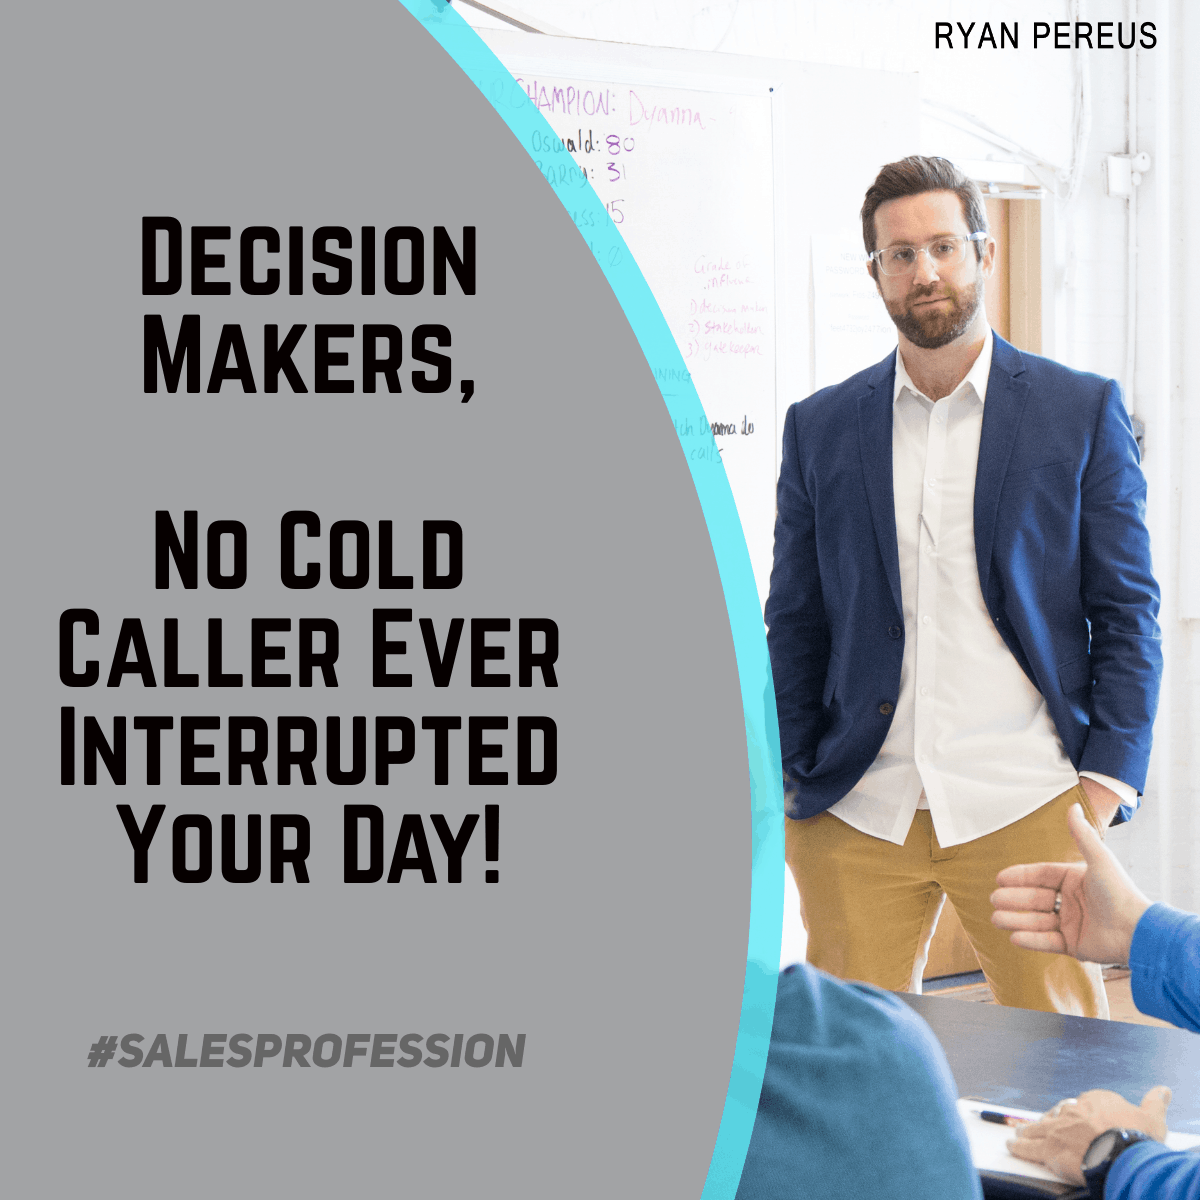 Decision Makers – No Cold Caller Ever Interrupted Your Day!